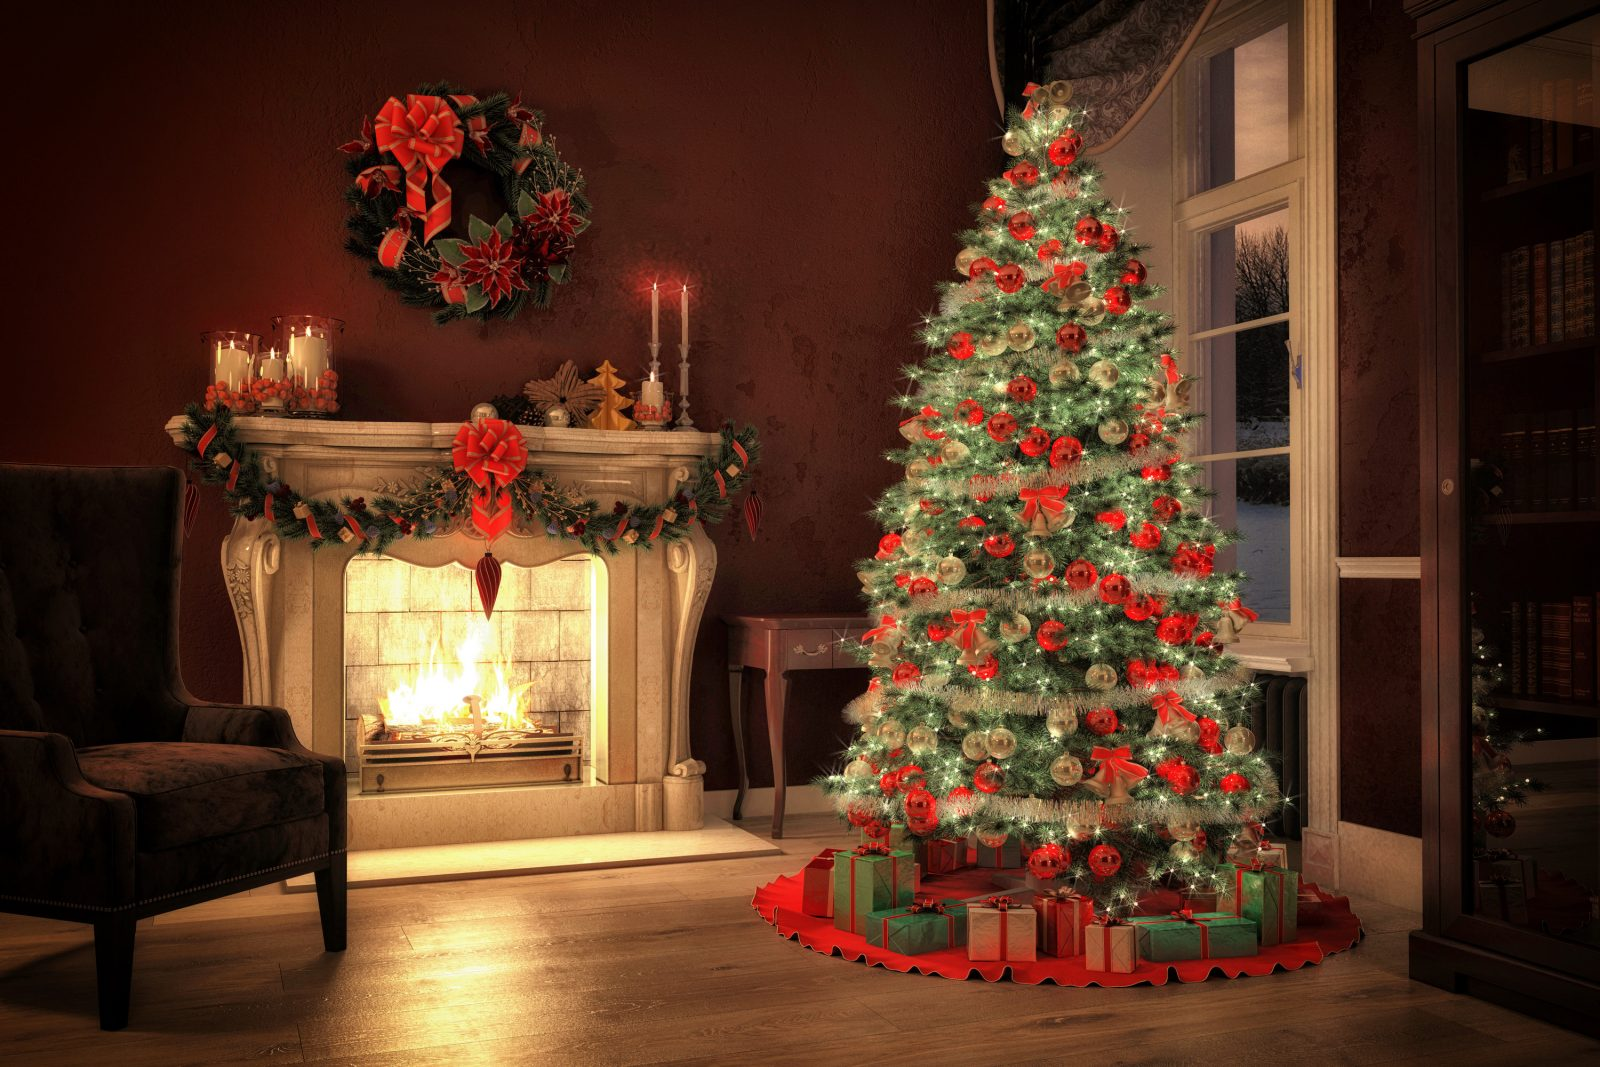 Christmas tree in a room with fireplace, 3d rendering, © Can Stock Photo / 2mmedia